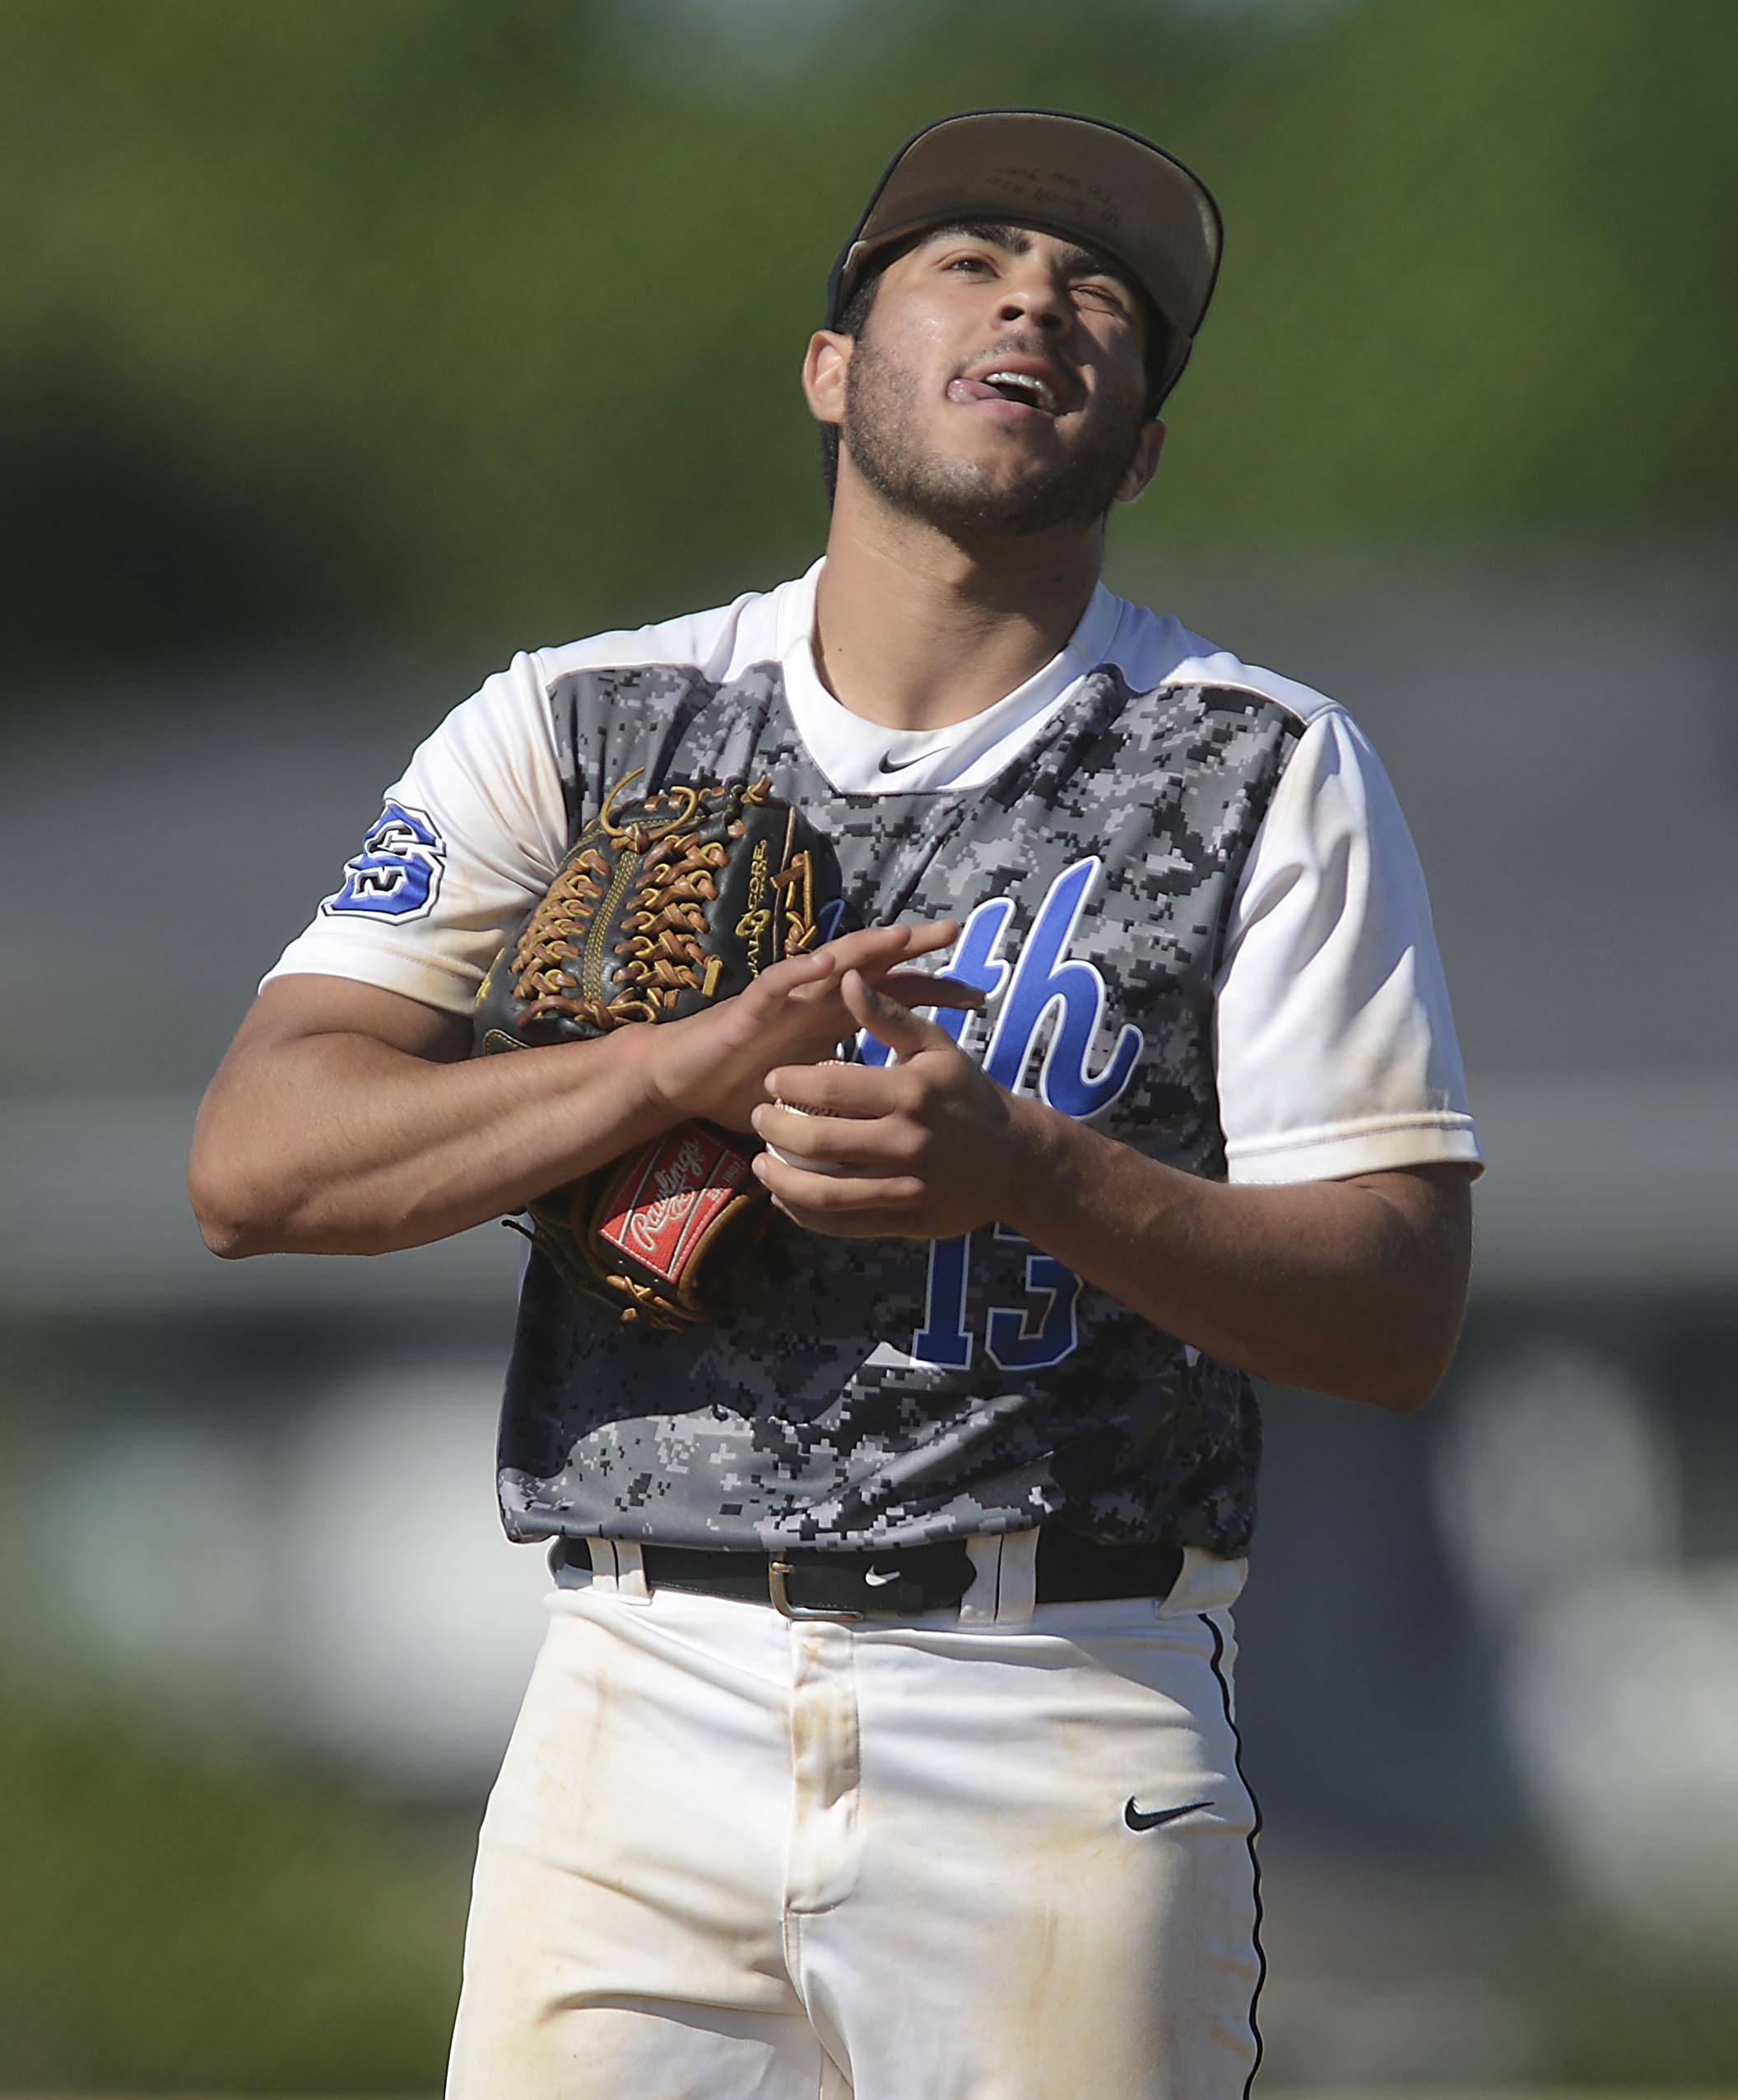 St. Charles North starting pitcher Frankie Farry reacts as South Elgin continues to score runs in the first inning in the Class 4A Schaumburg sectional semifinal game Thursday.